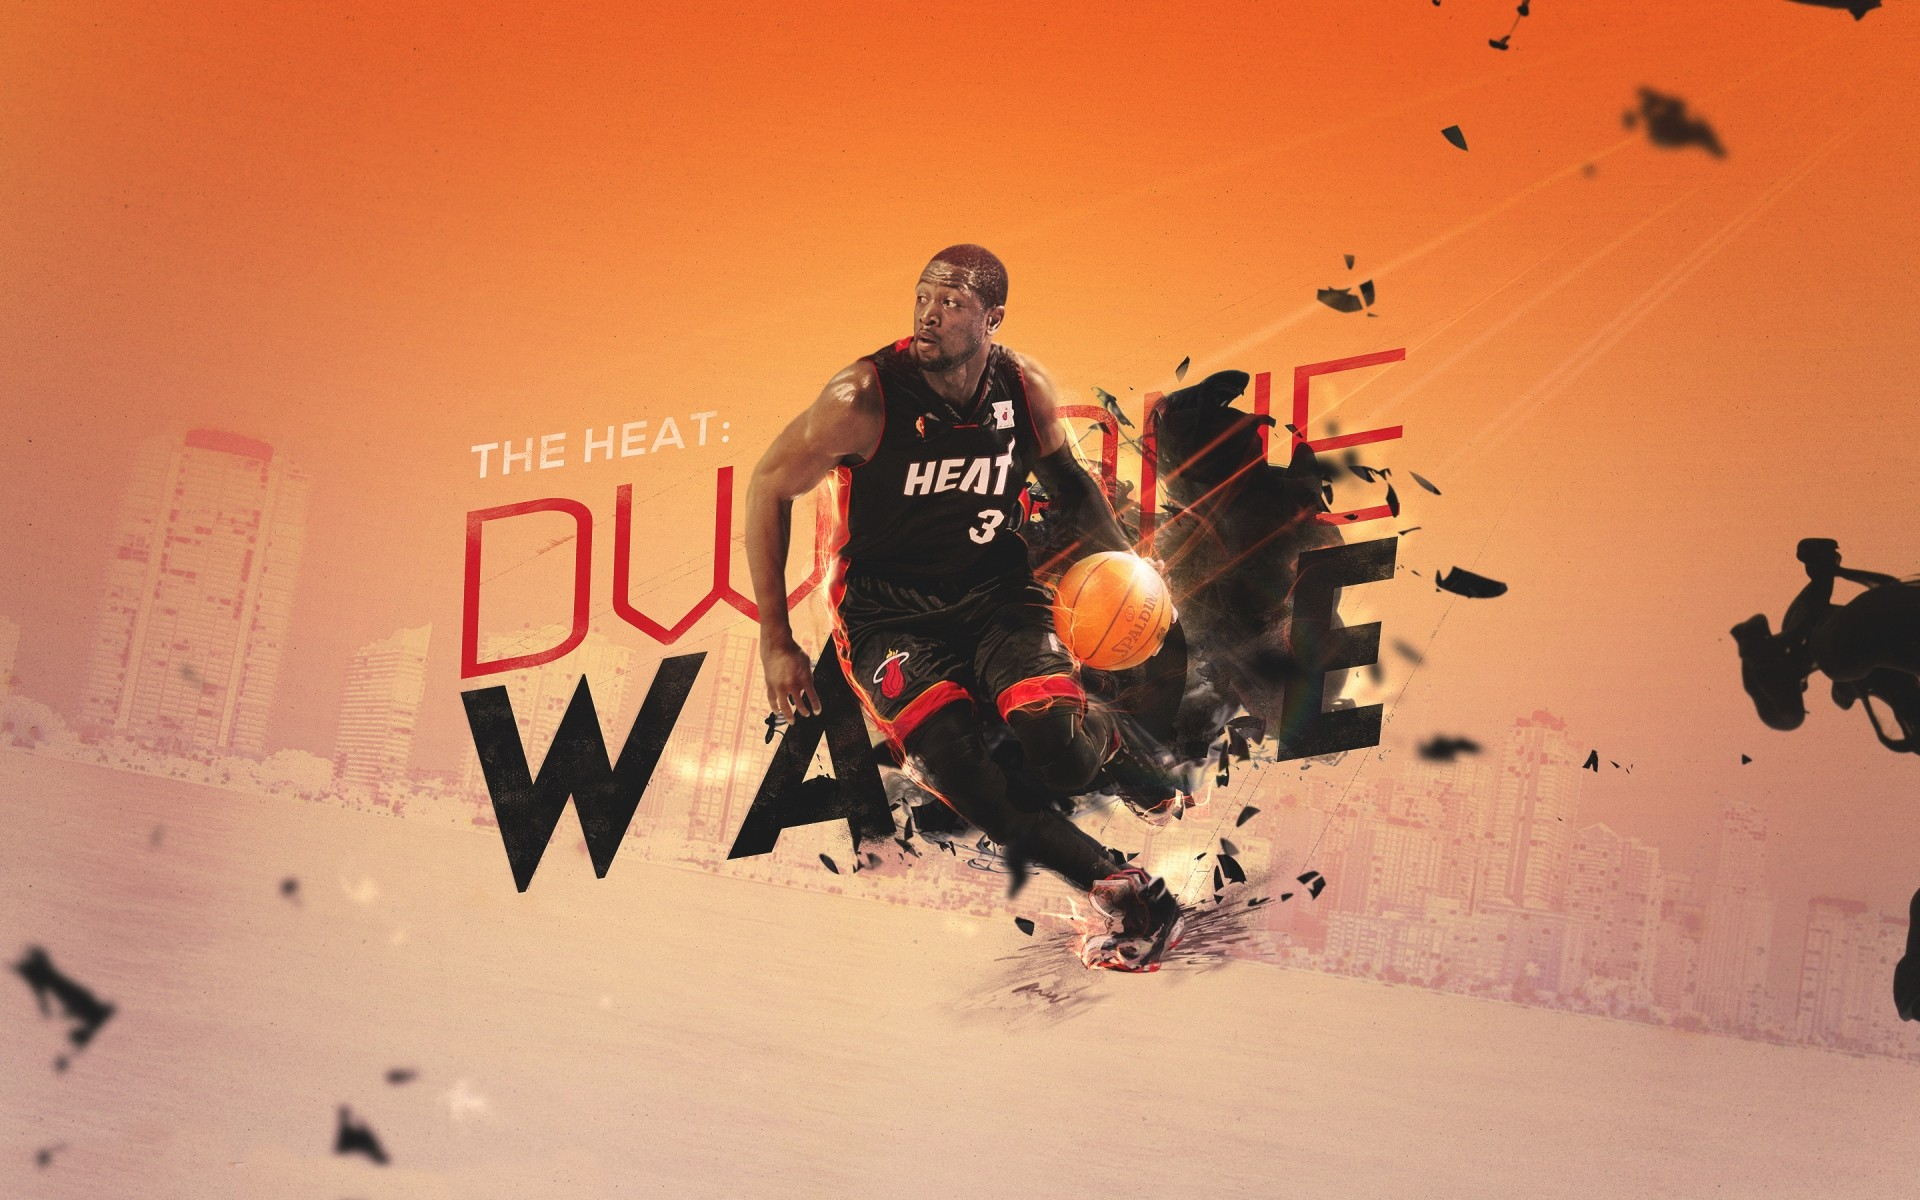 dwyane wade poster. android wallpapers for free.